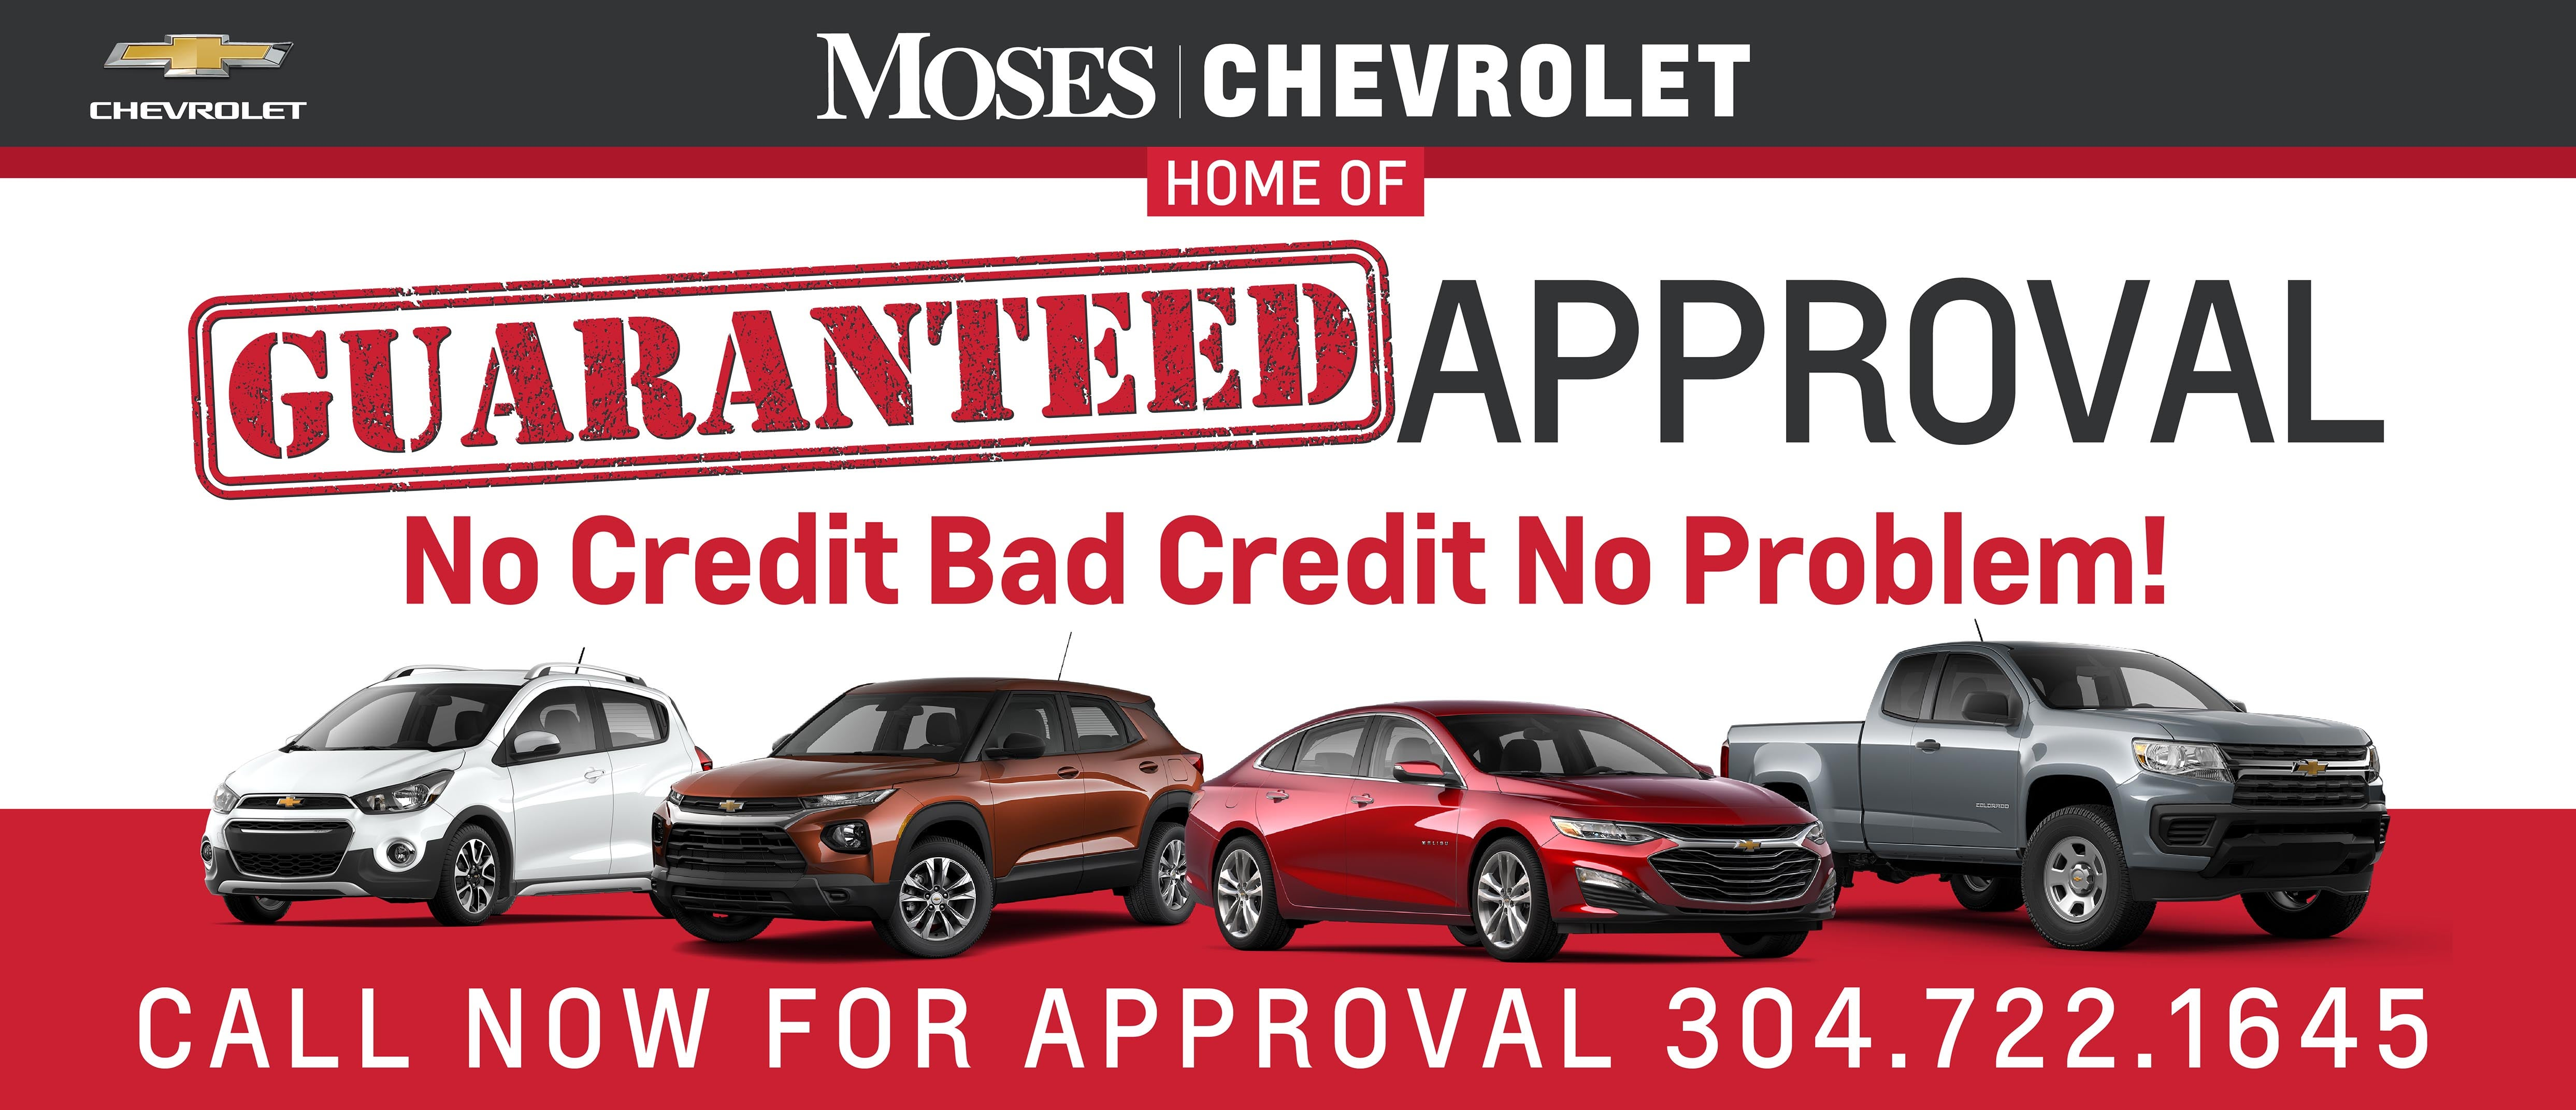 New Used Chevrolet Dealer Saint Albans Wv Moses Chevrolet